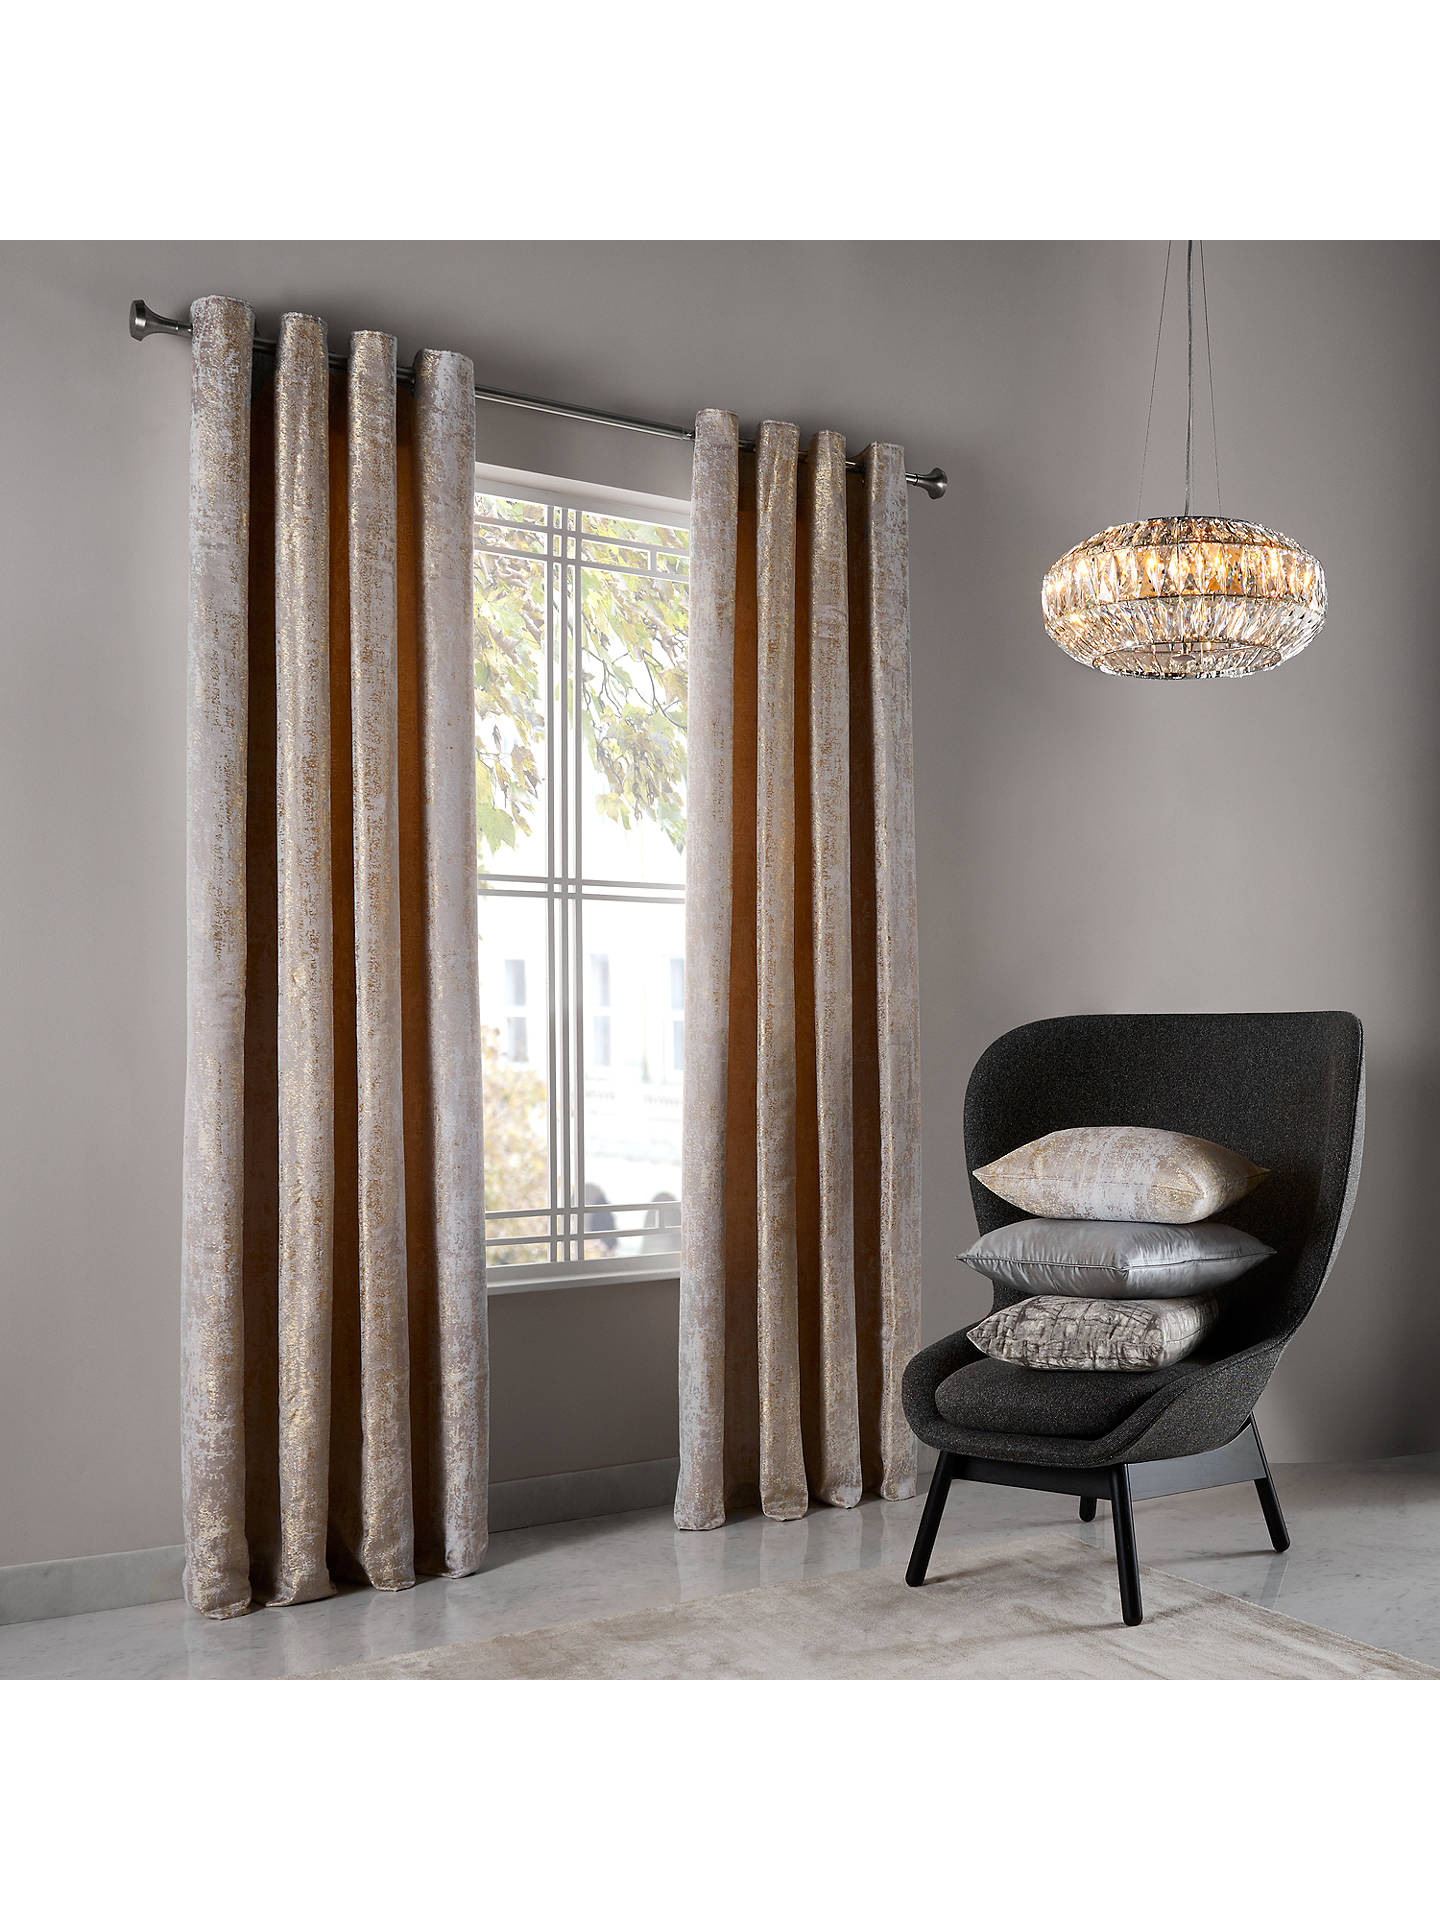 BuyJohn Lewis & Partners Compton Pair Textured Lined Eyelet Curtains, Gold, W167 x Drop 137cm Online at johnlewis.com